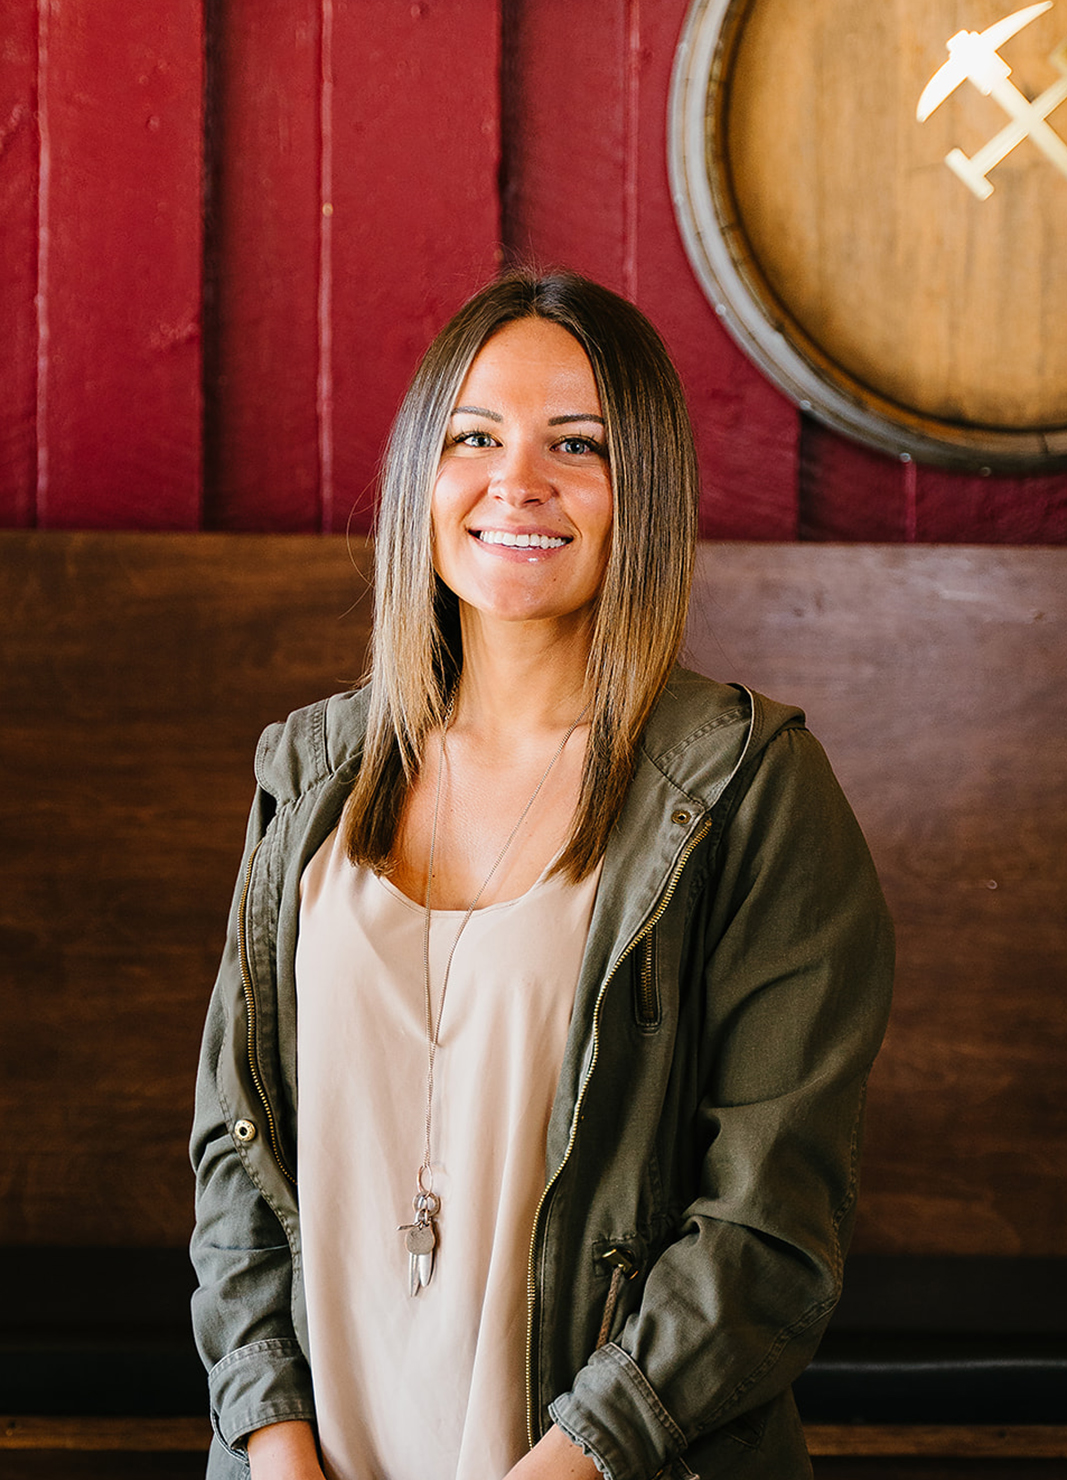 Carboy Tasting Room Manager, Kristen Kahl, standing in front of wine barrels